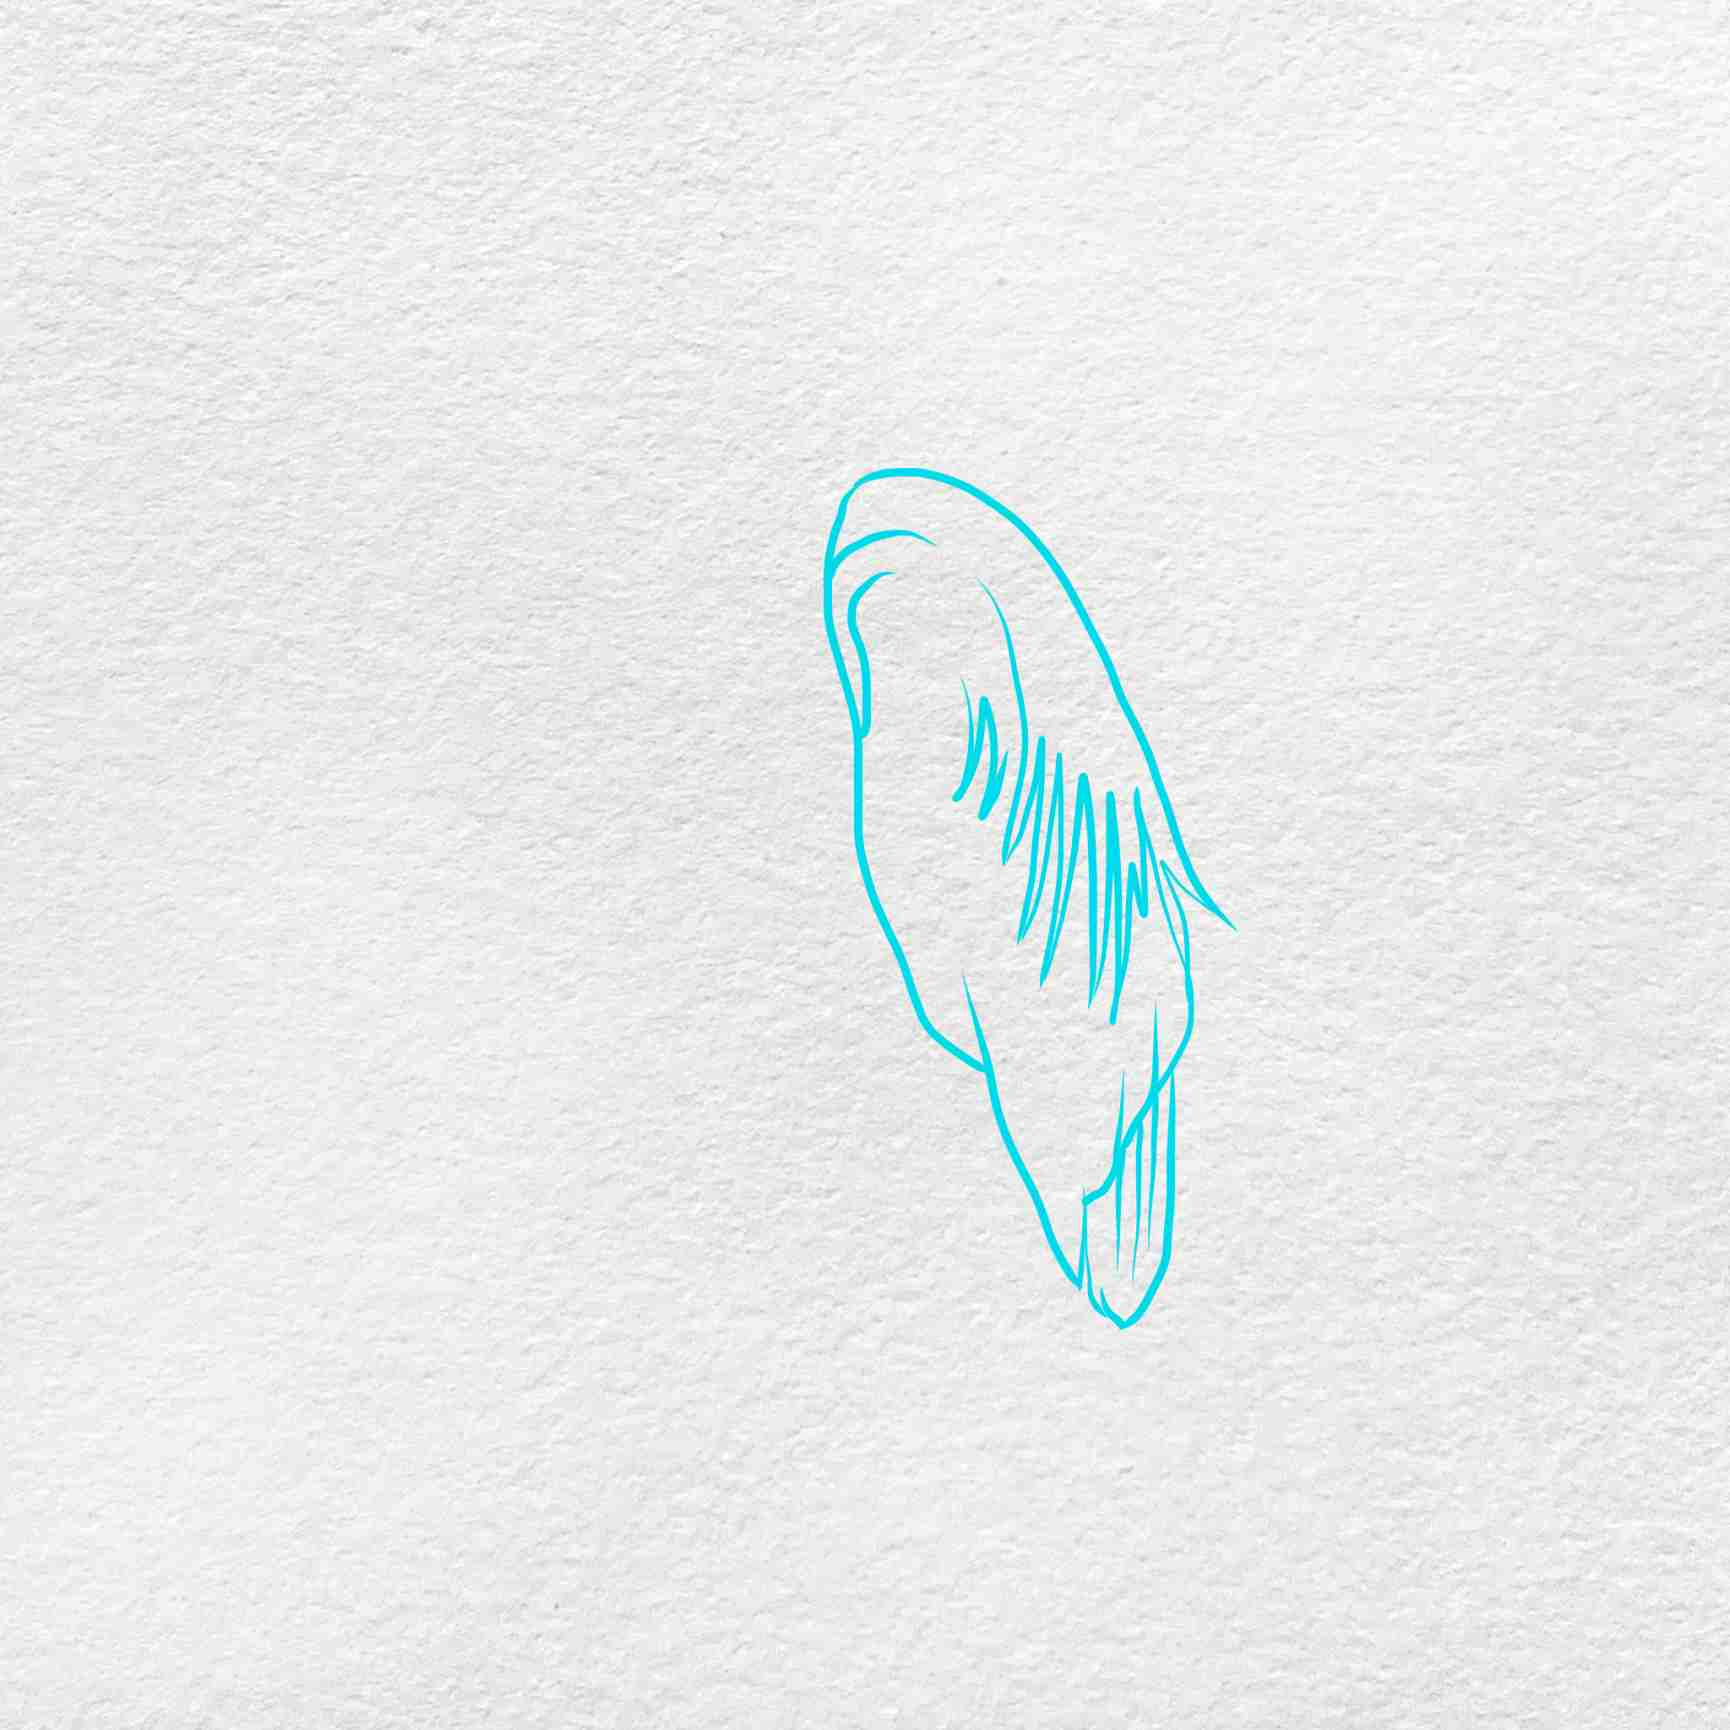 How To Draw A Heron: Step 1